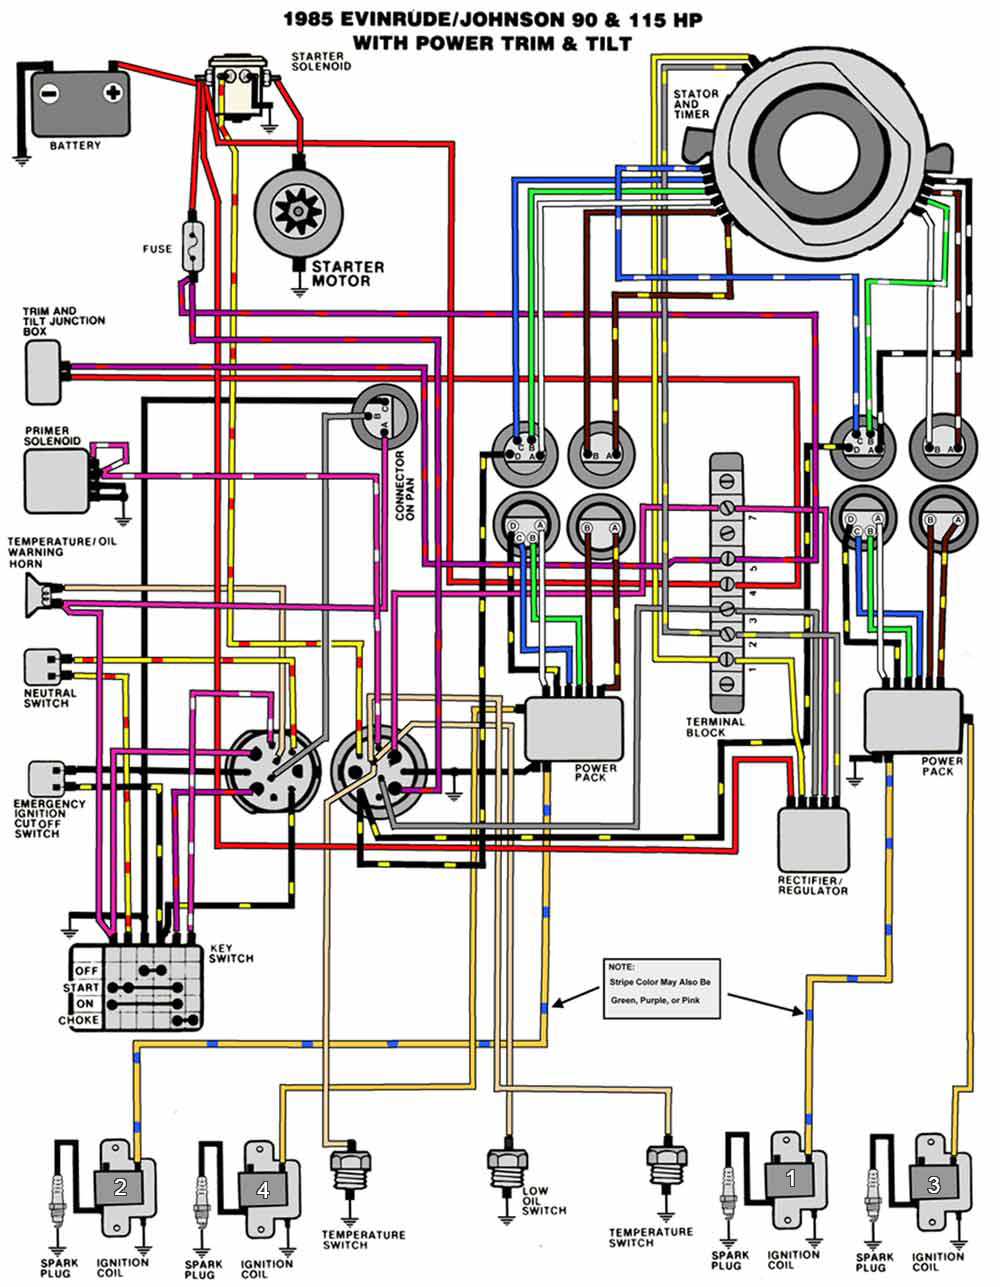 omc co wiring diagram reconnecting key switch (pics included) page: 1 - iboats ... 1993 mustang co wiring diagram